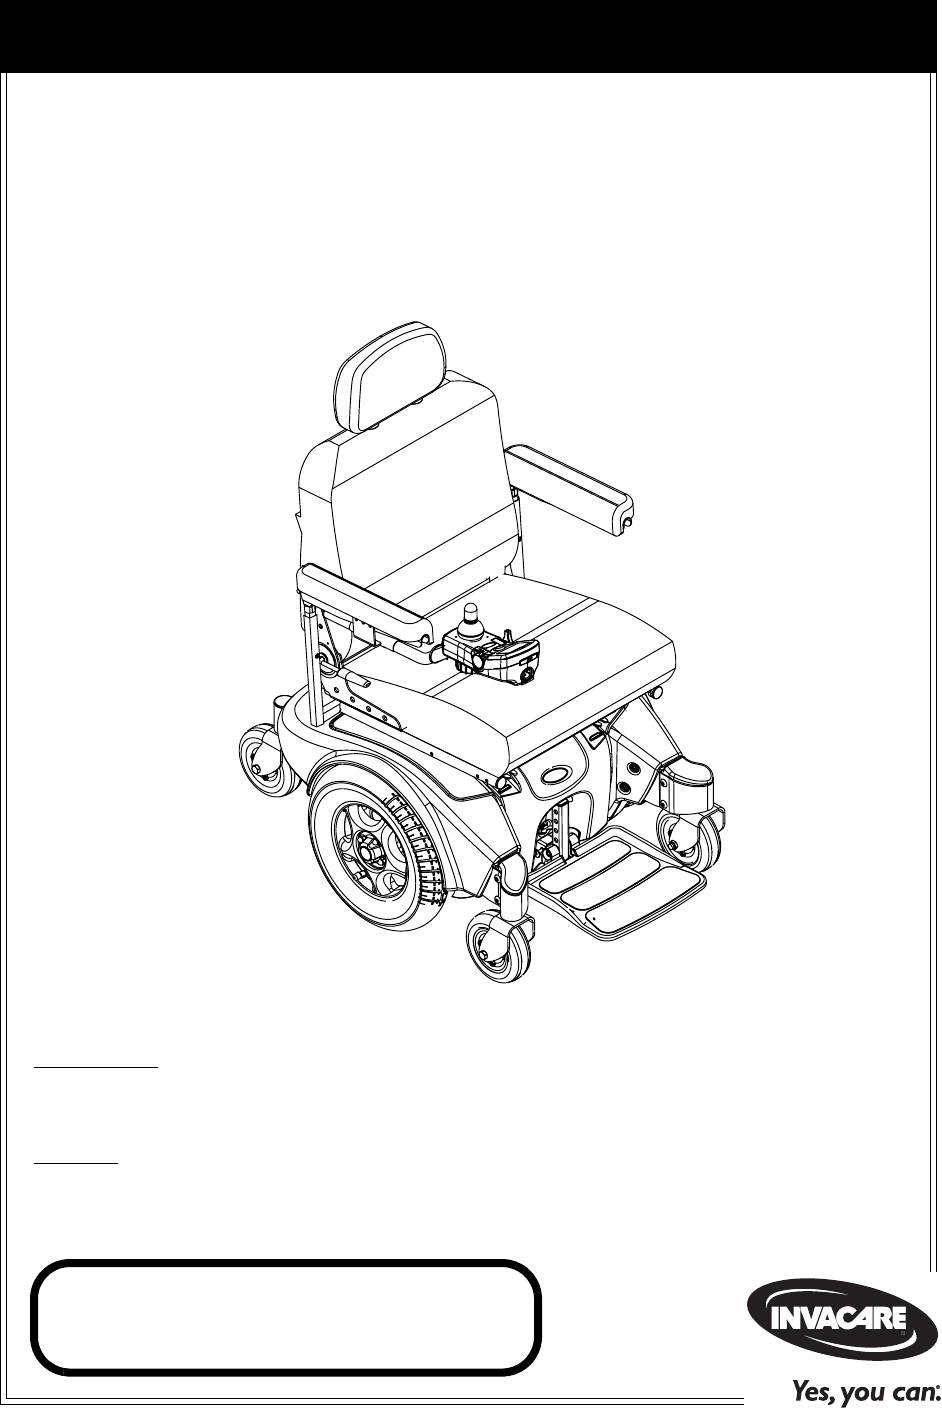 Invacare Mobility Aid Pronto M71 User Guide